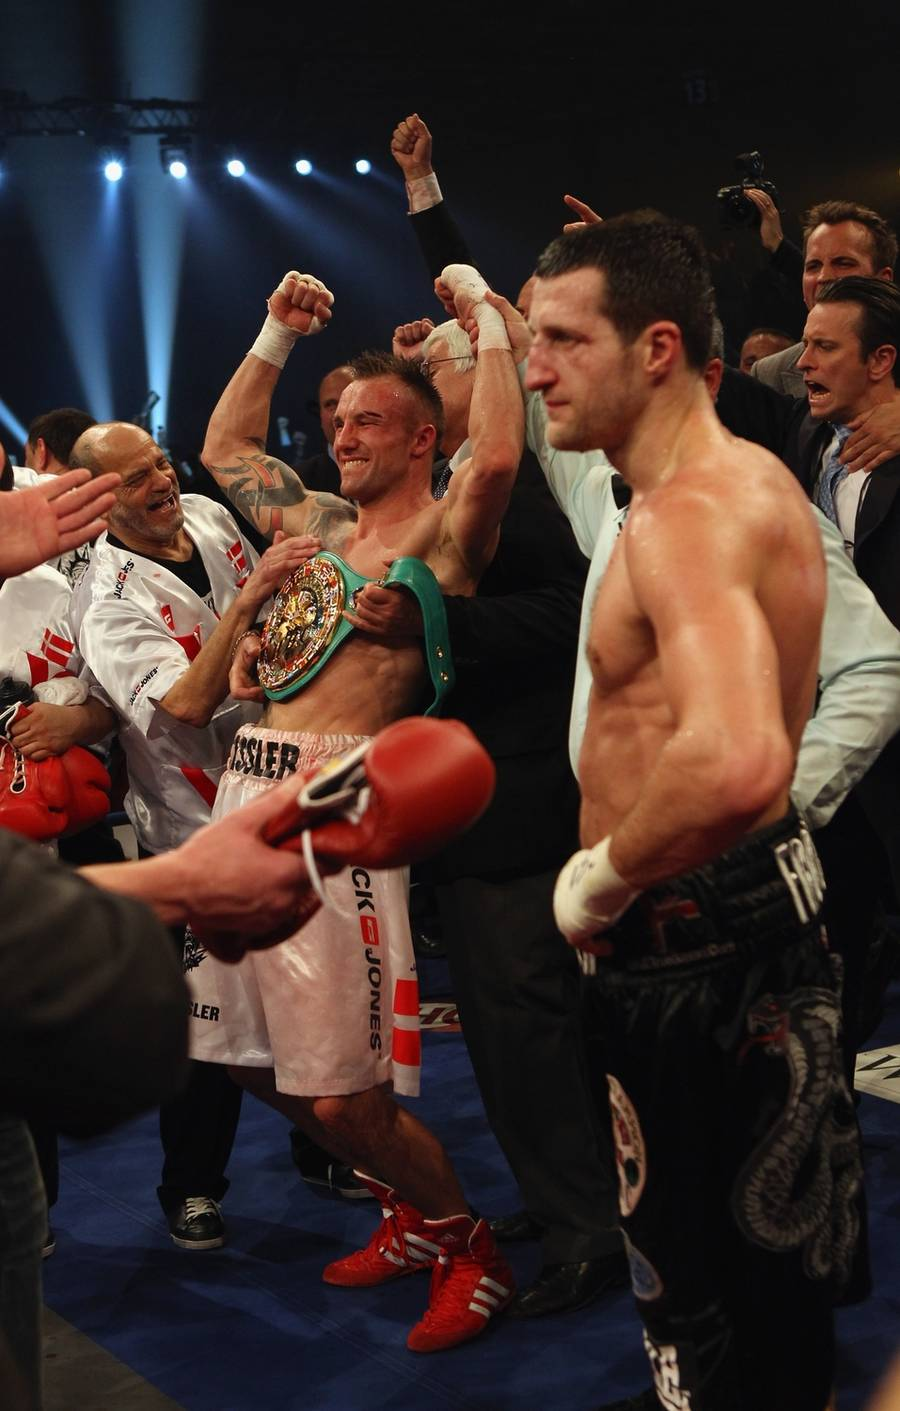 ... and new WBC Supermiddleweight Champion of the World ... MIKKEEEEEL KESS-LEEER! (Foto: Getty Images)